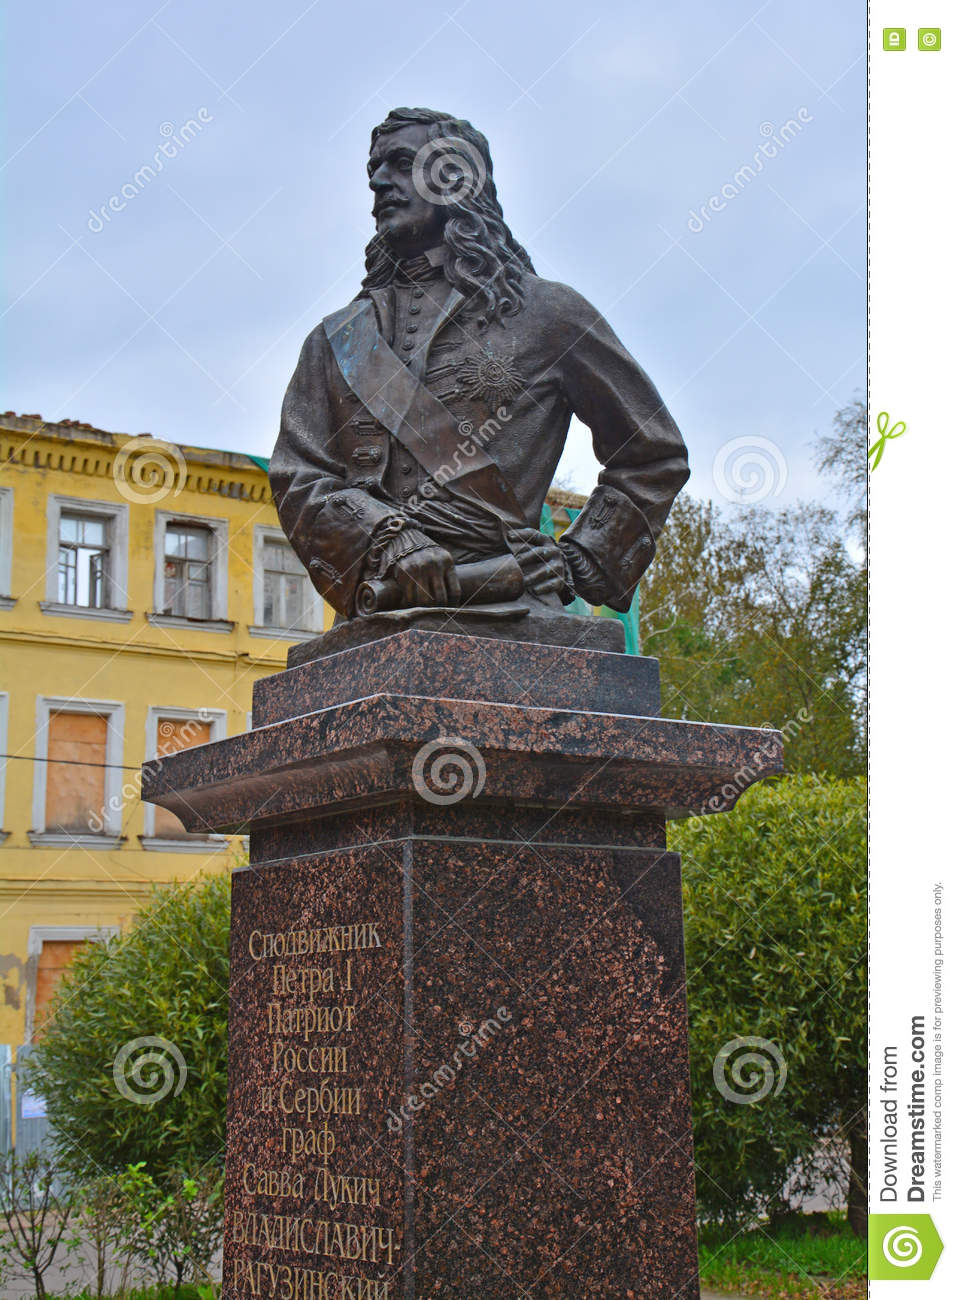 Bust Of The Count S L Raguzinsky On Staroladozhsky Kanal Street In Shlisselburg Russia Stock Image Image Of Kanal Historical 79285531